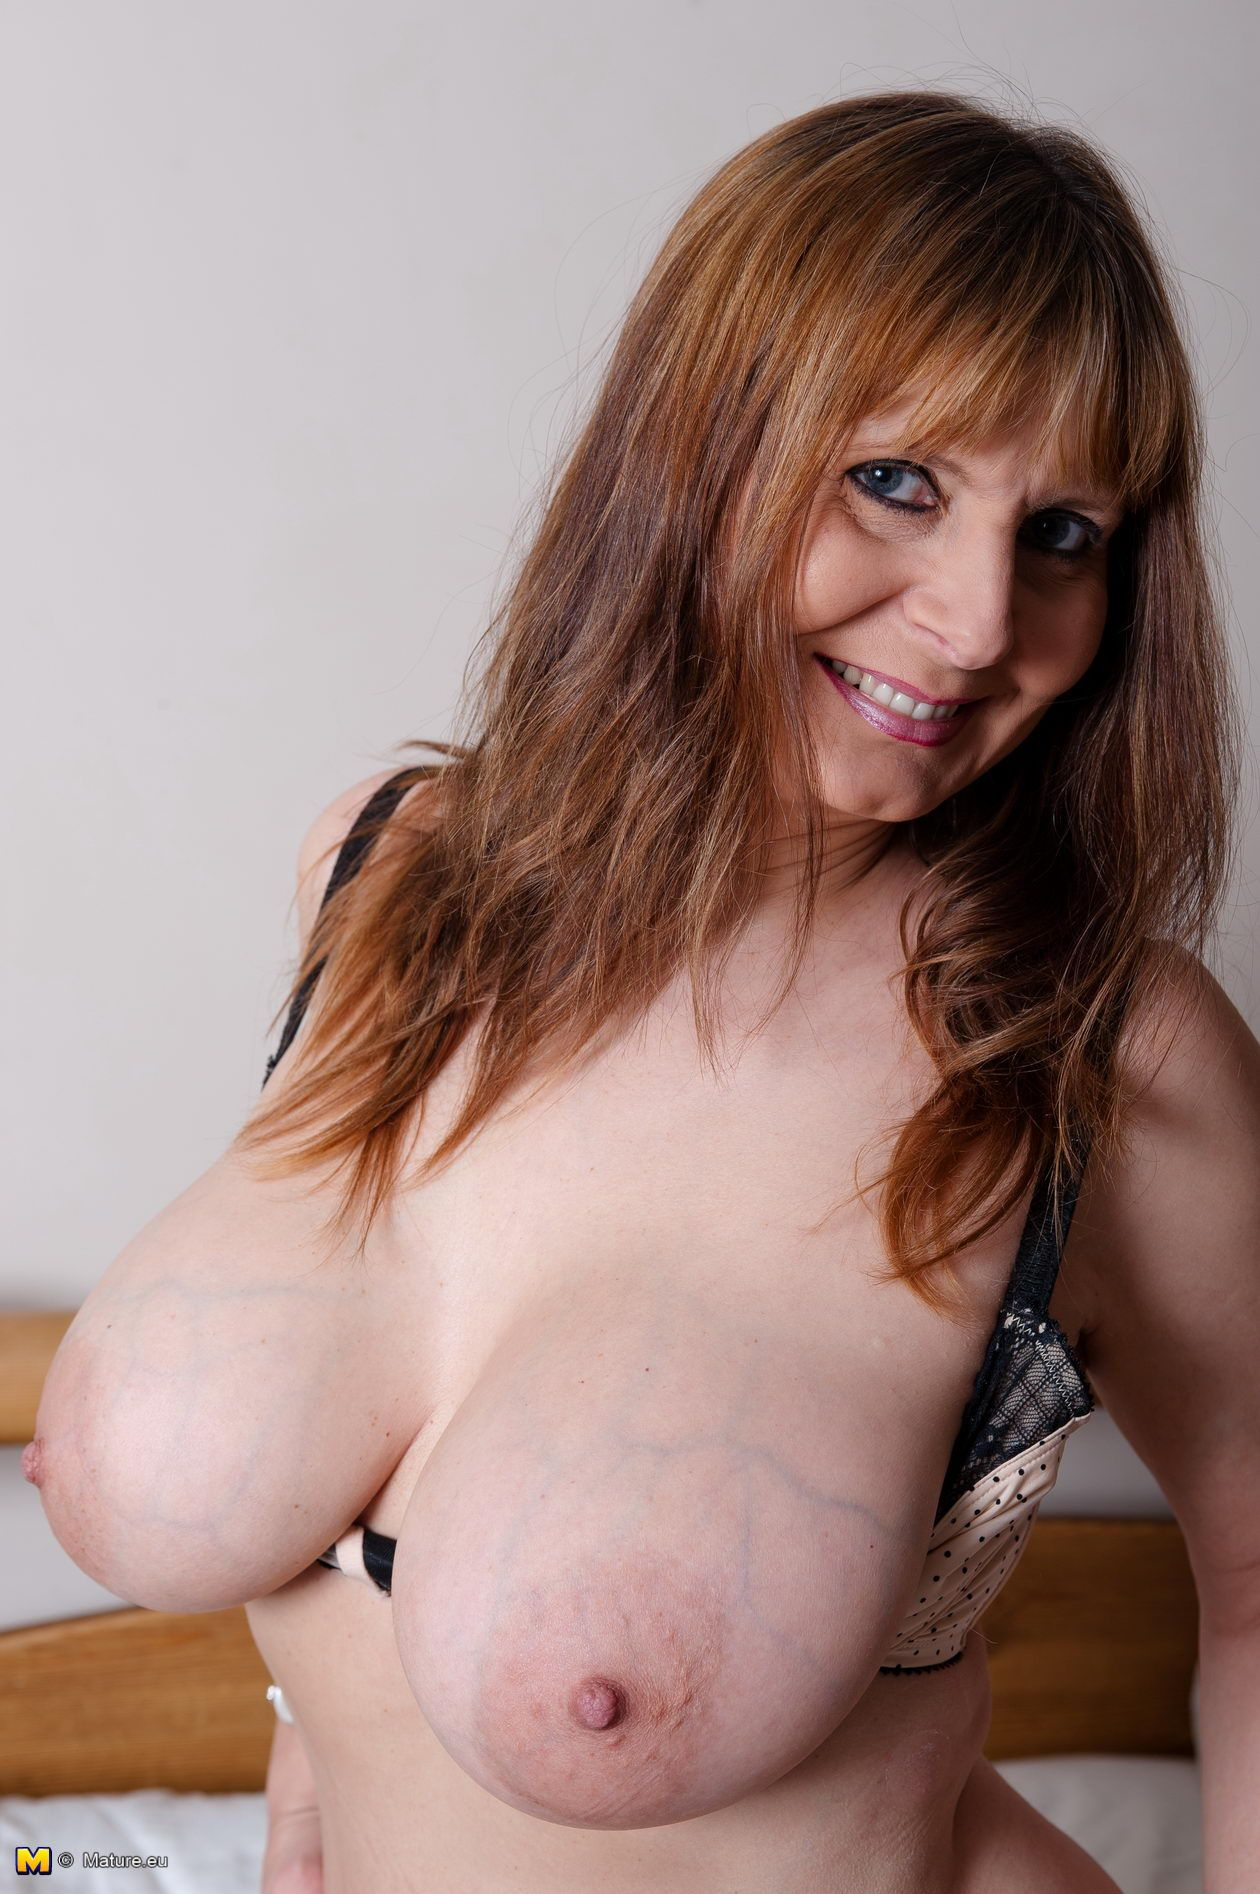 mature tits tumblr